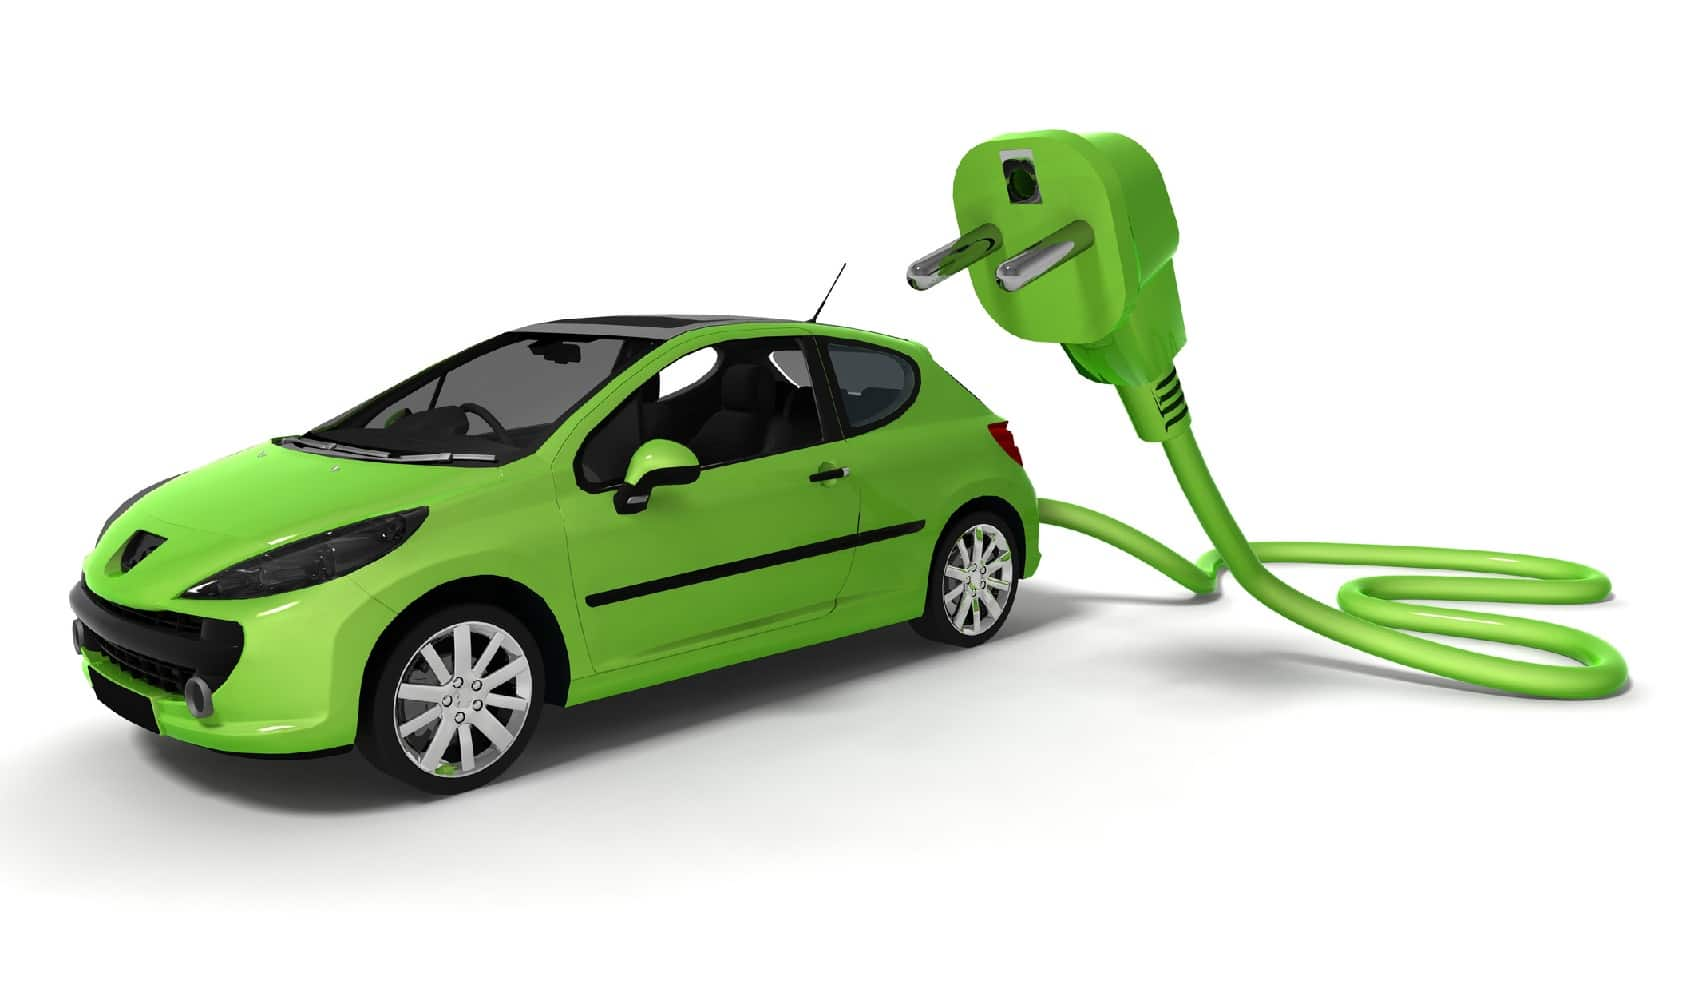 Mainis Set Up New Venture To Boost Electric Vehicle Use